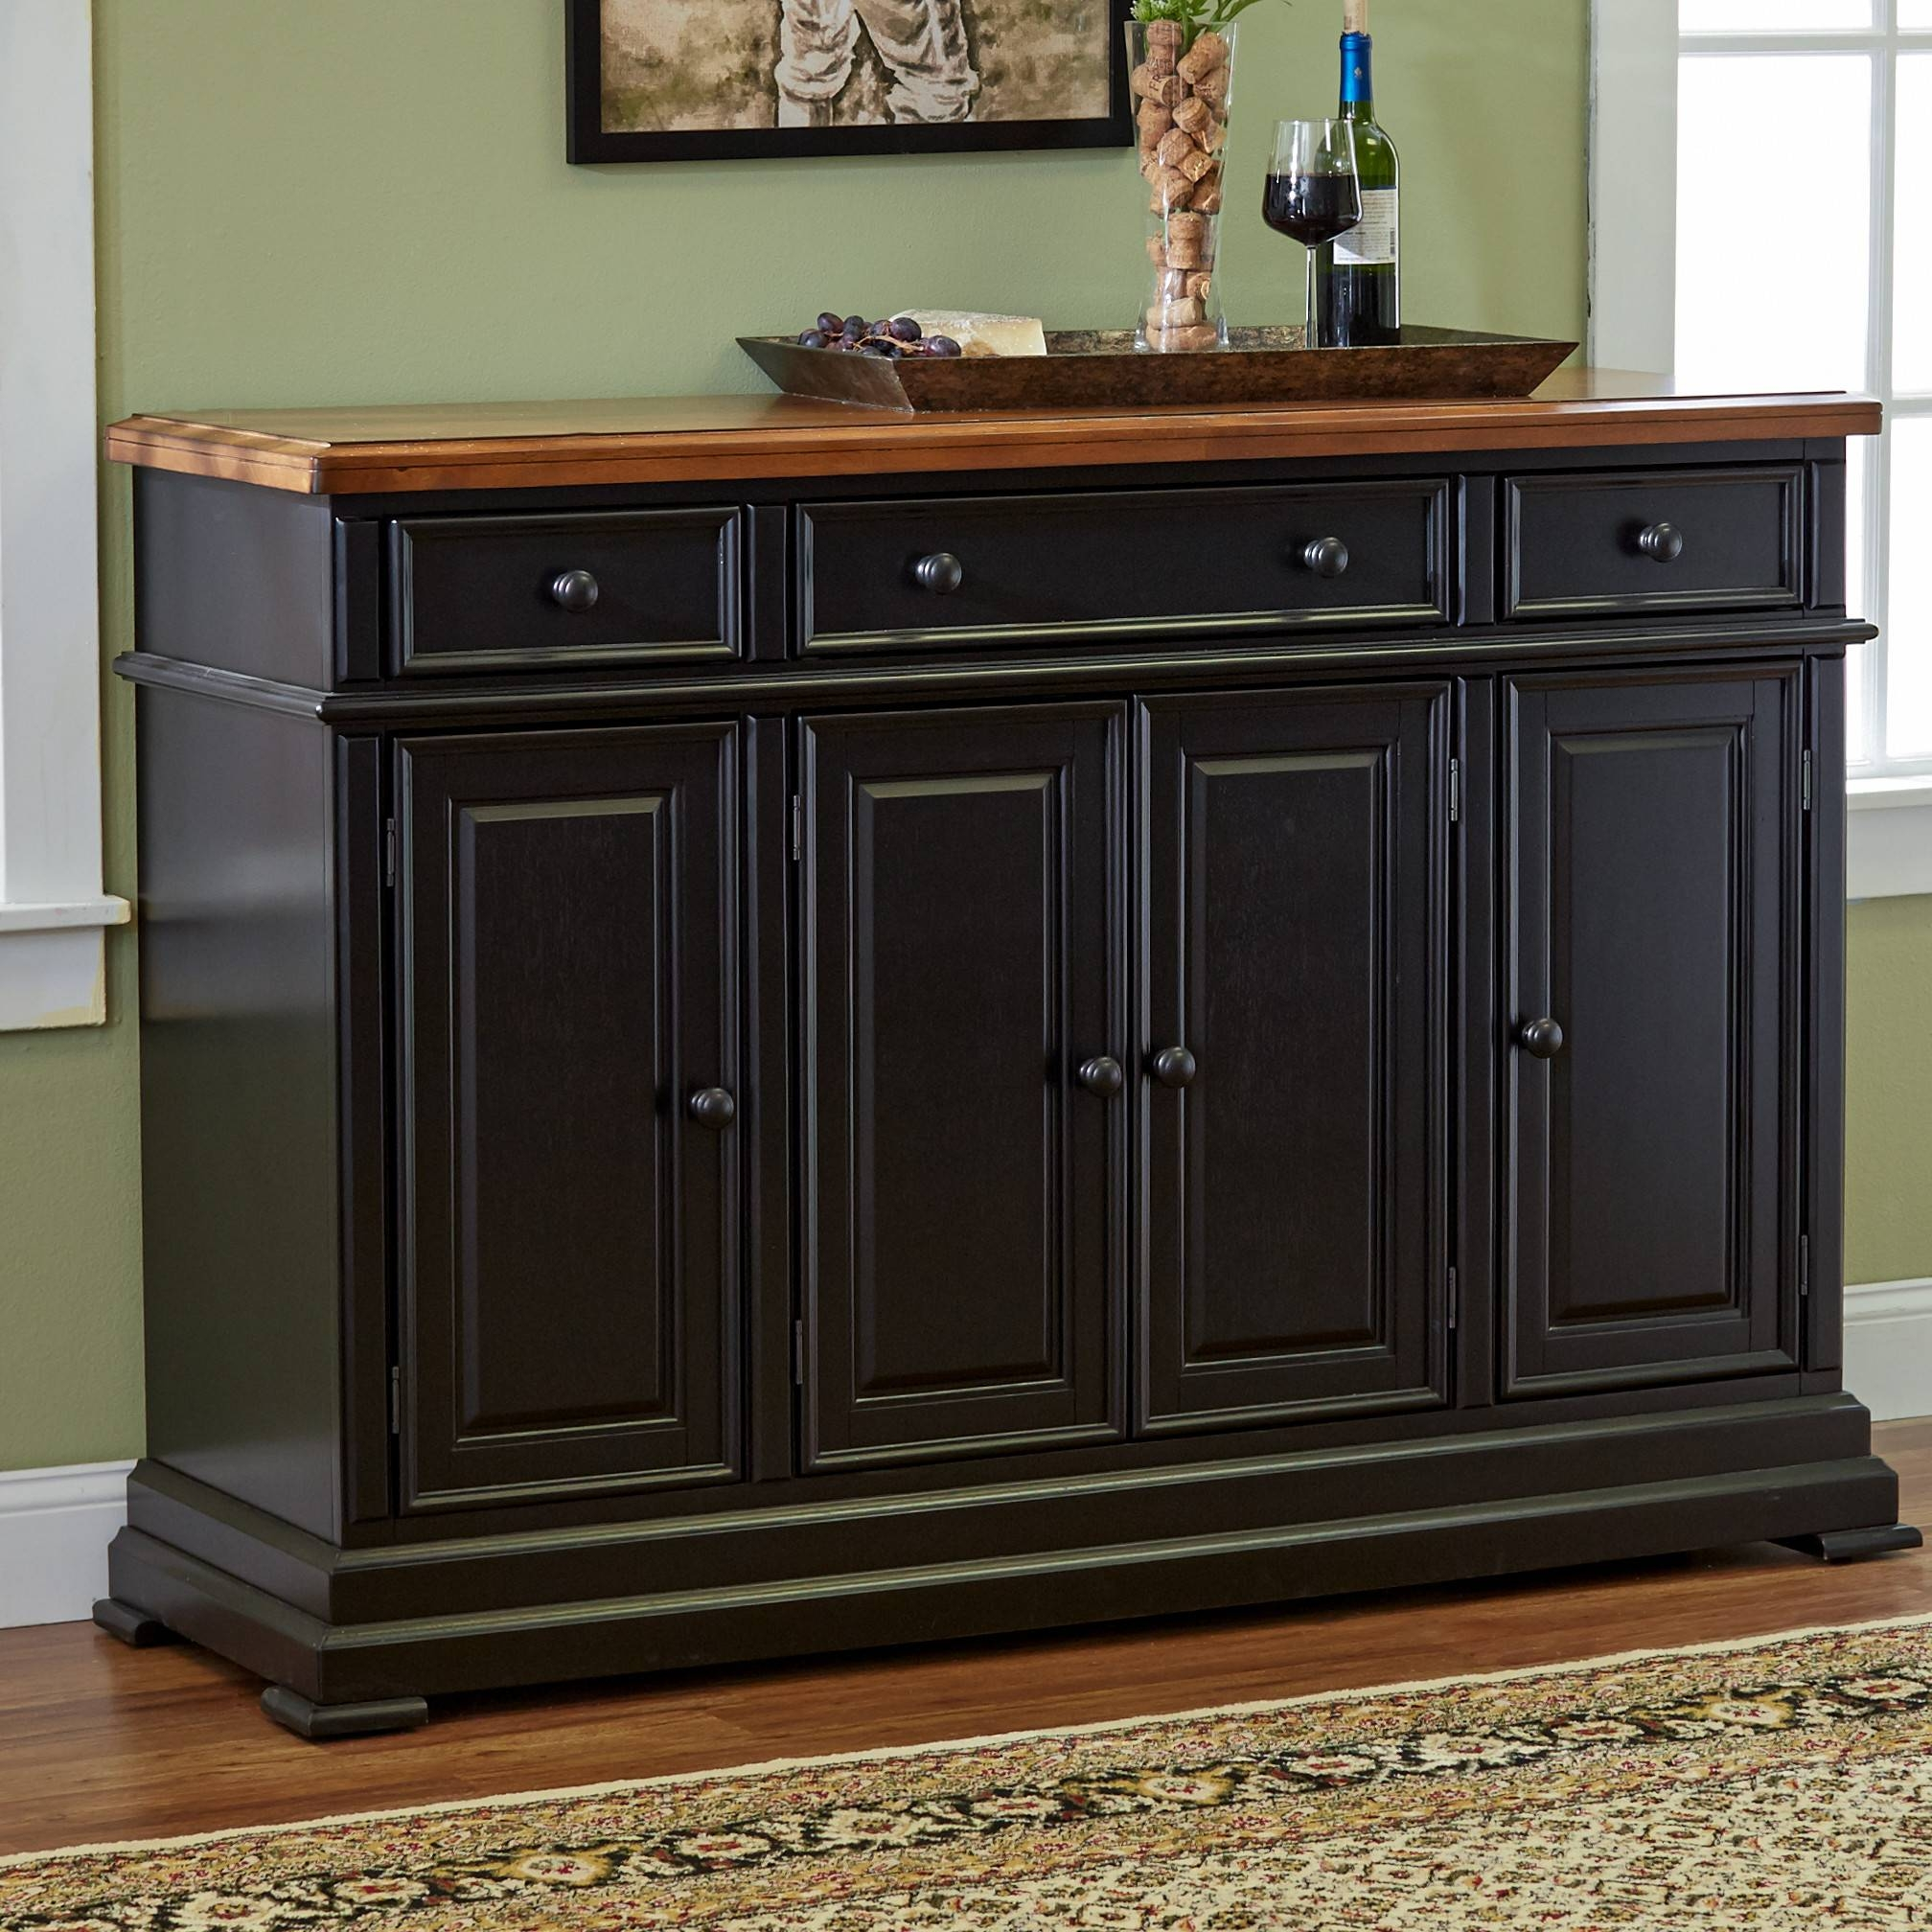 Dining Room Buffet Cabinet Sideboards Buffets Storage Servers 17 Throughout Dining Room Sideboards (View 11 of 15)